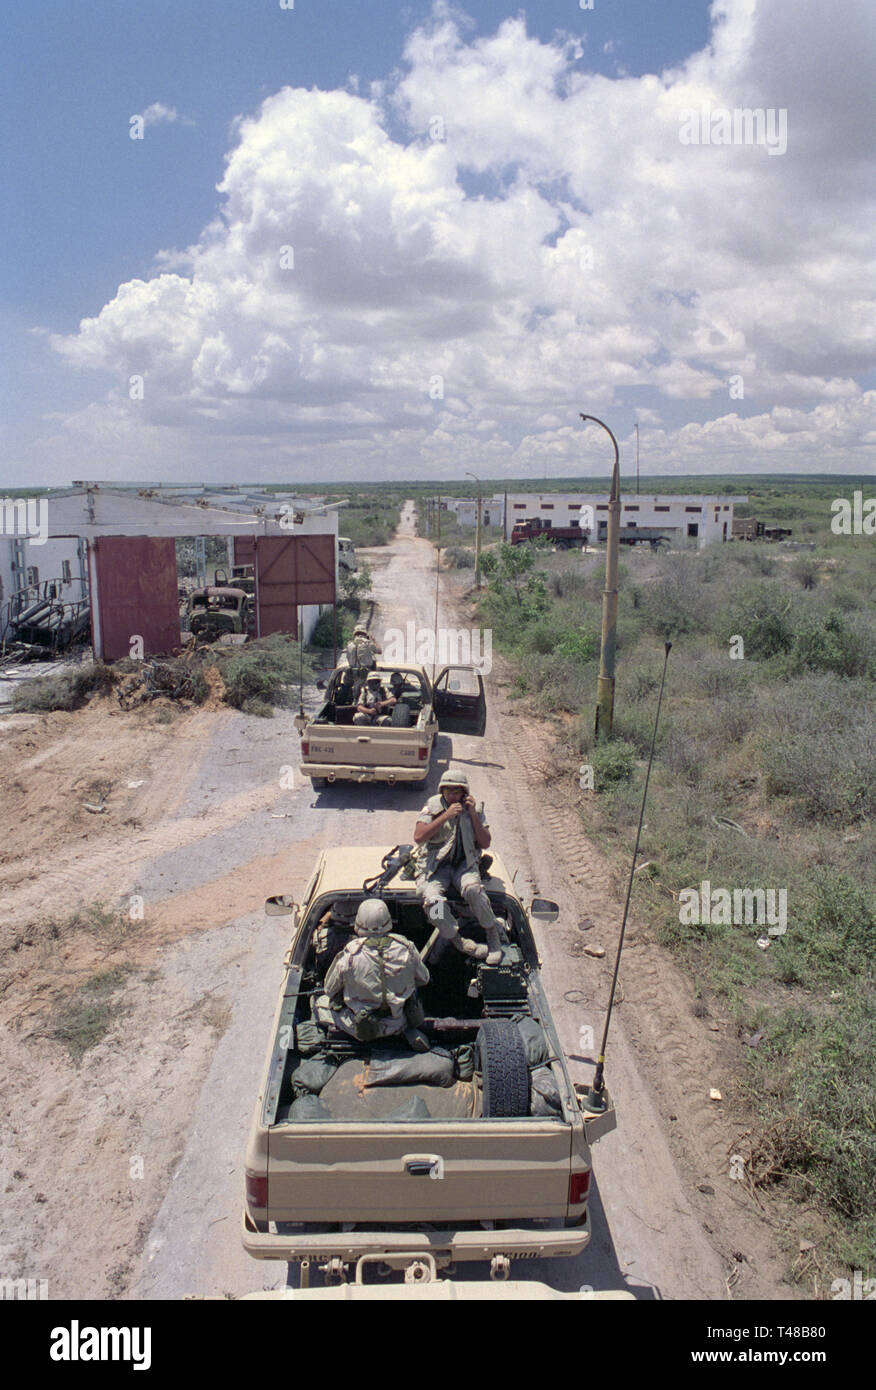 31st October 1993 U.S. Army soldiers from the USA Forces Command prepare to return to UNOSOM Headquarters as they depart 'Victory Base', to the north of Mogadishu, Somalia. - Stock Image